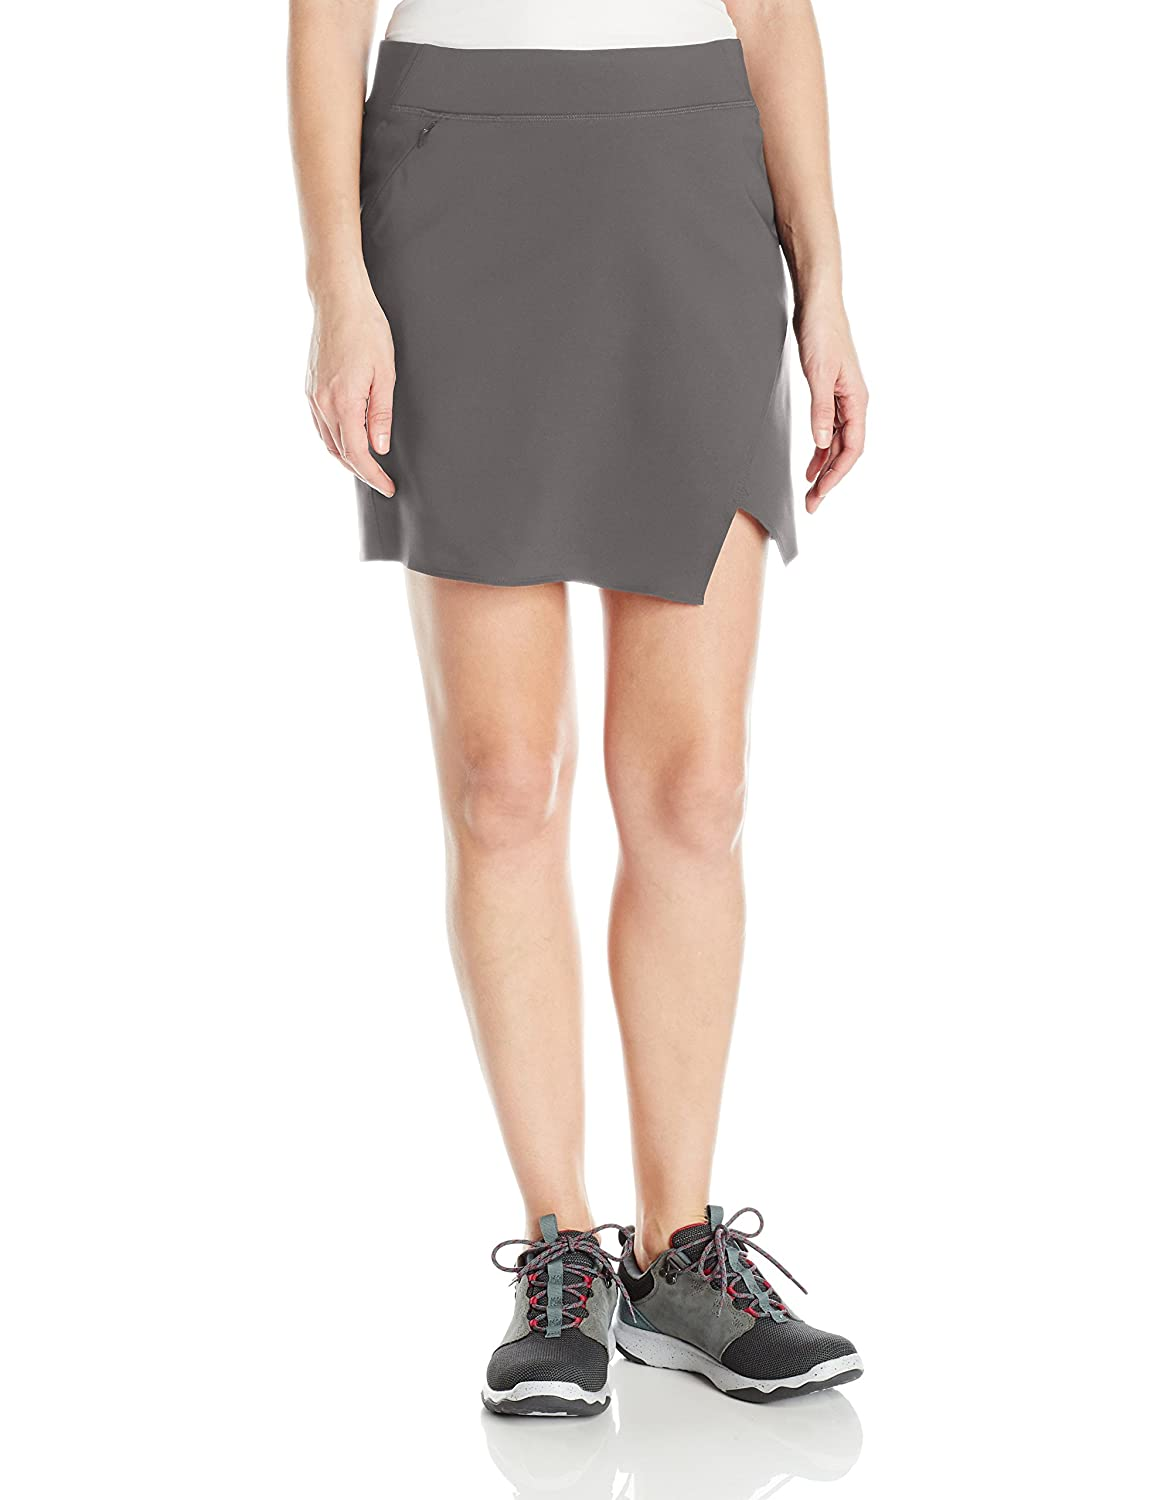 485906fb24 Columbia Women's Back Beauty Skort: Amazon.in: Clothing & Accessories